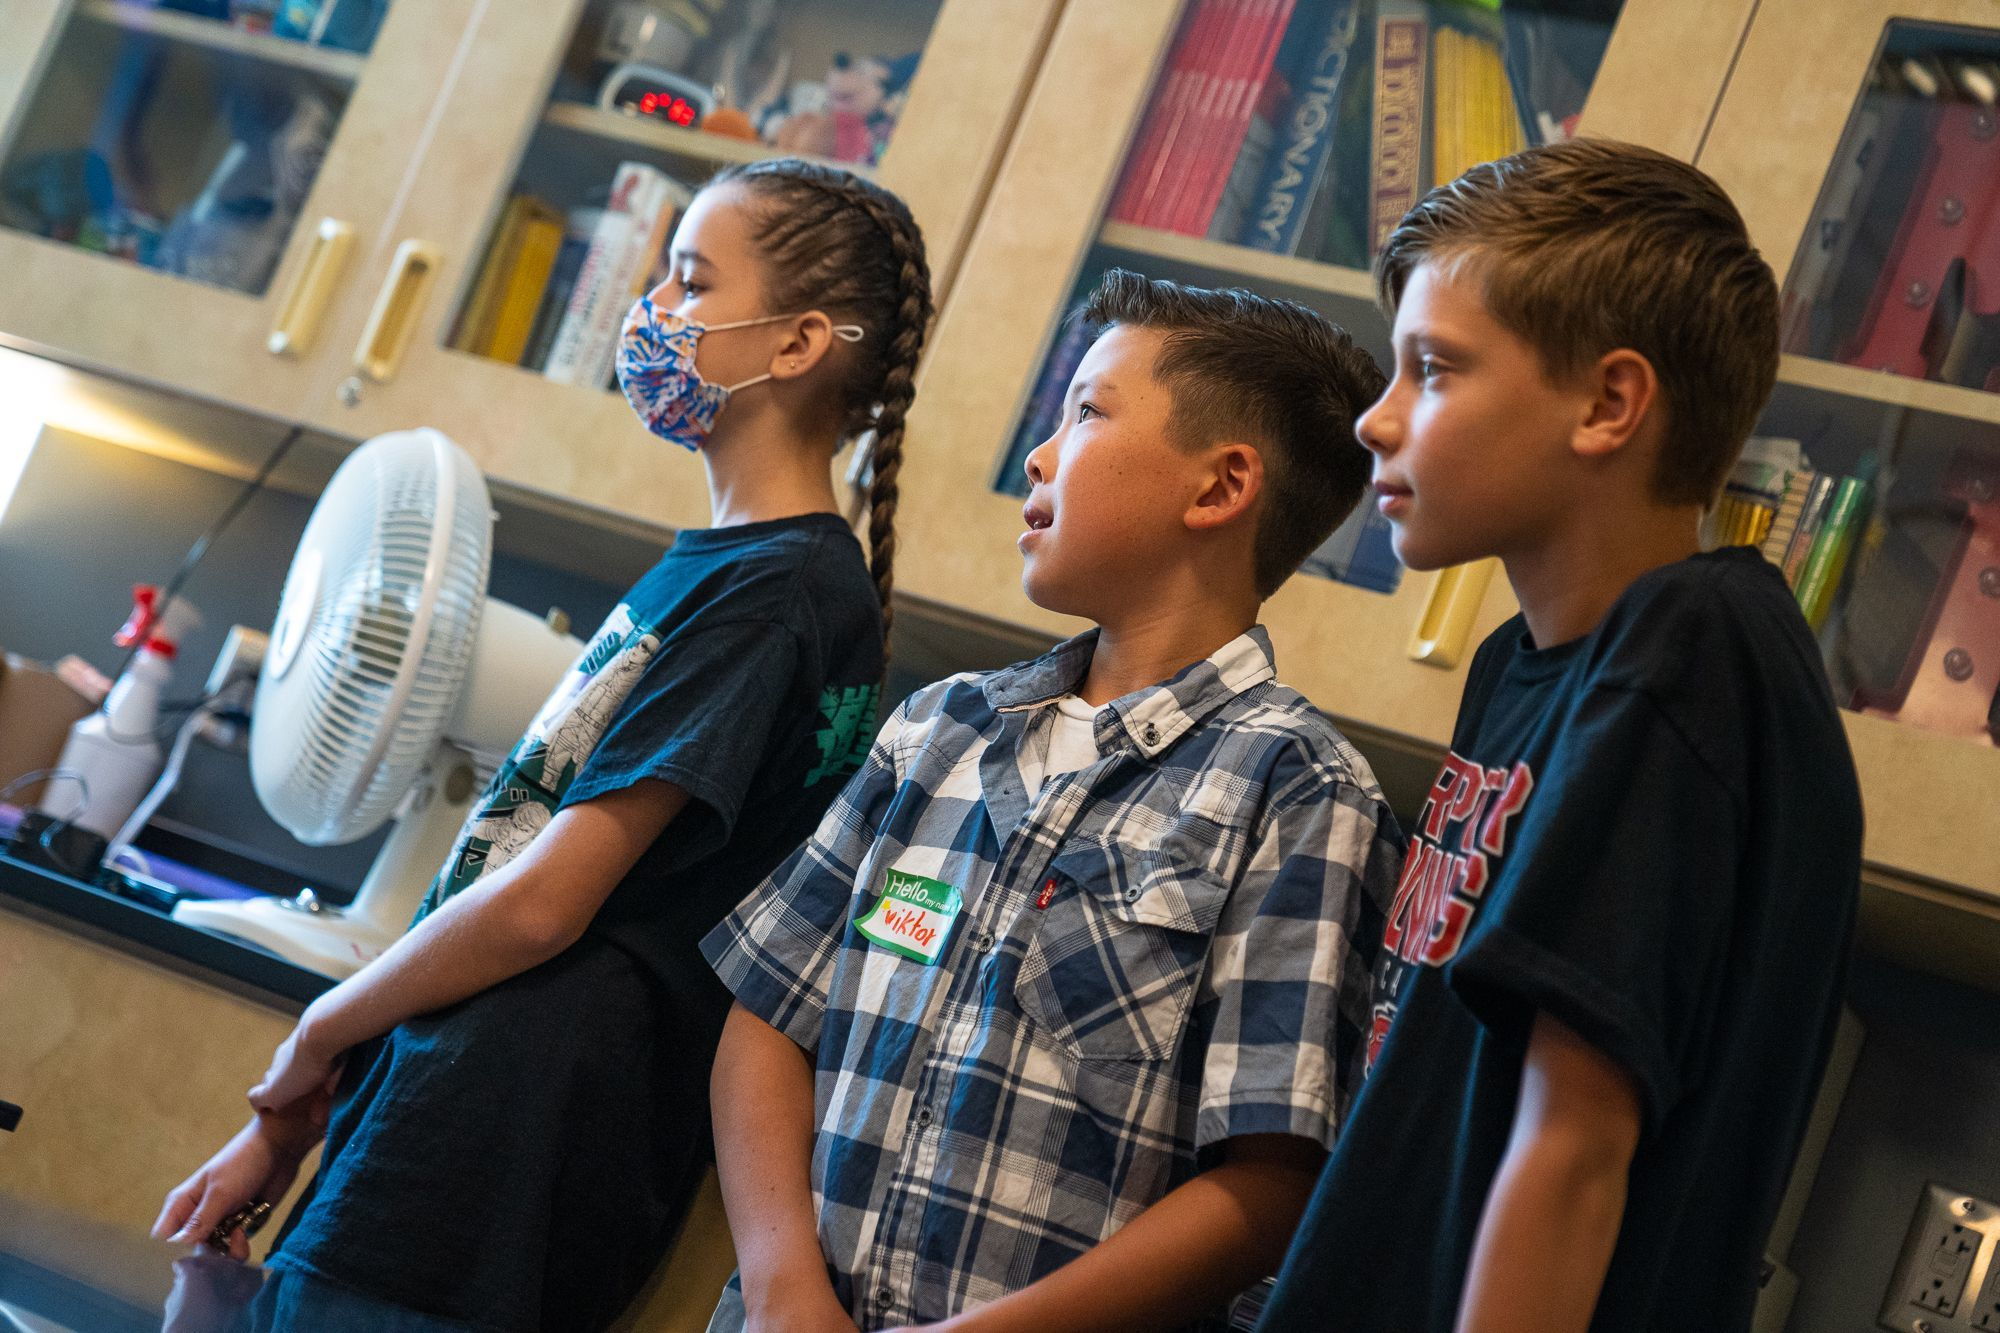 Launch program takes off, prepares students for middle school